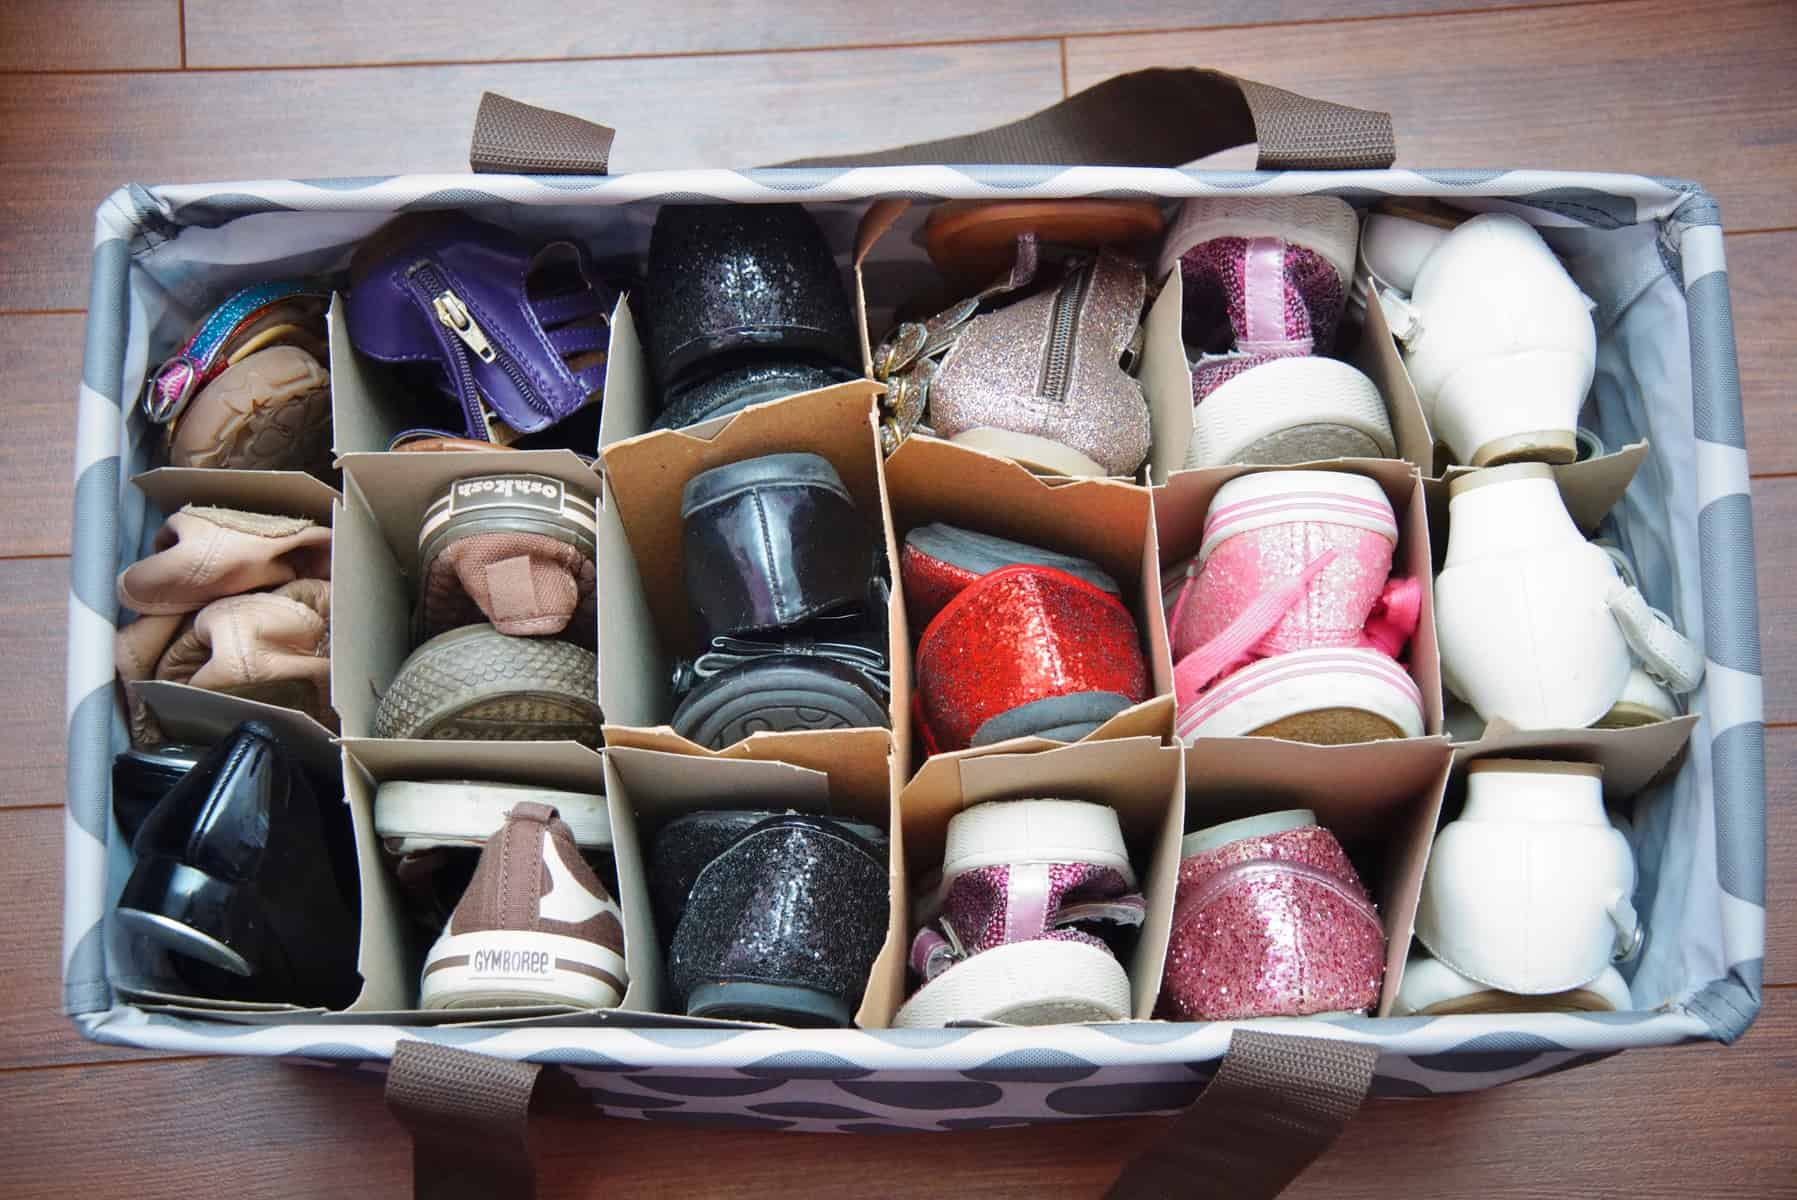 Ordinaire Use Wine Case Dividers To Organize Childrens Shoes